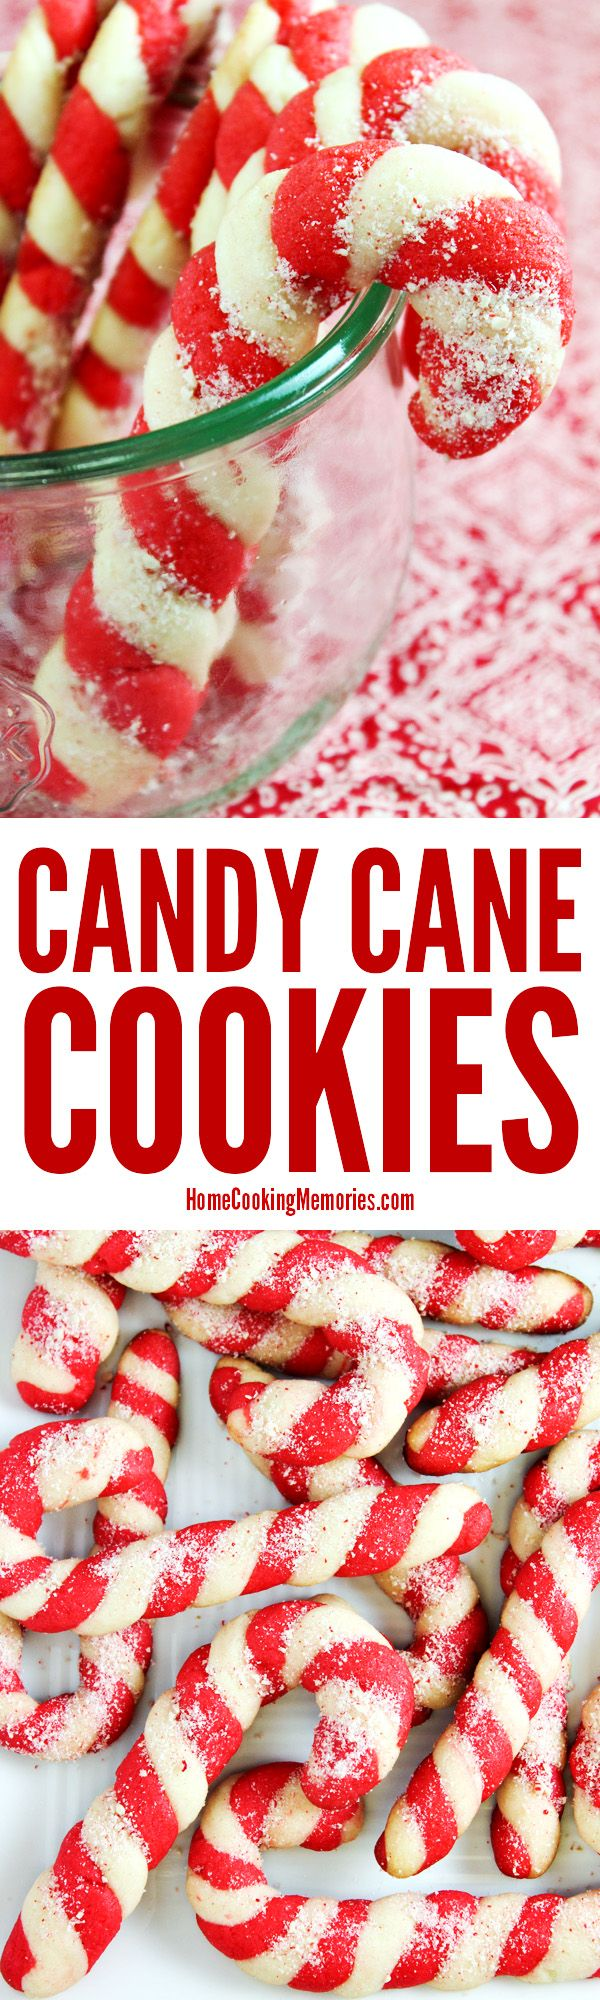 Christmas Candy Cane Cookies recipe! Made from an easy cookie dough recipe with plenty of festive peppermint flavor. The colorful dough is twisted to look like a candy cane. A favorite at holiday part